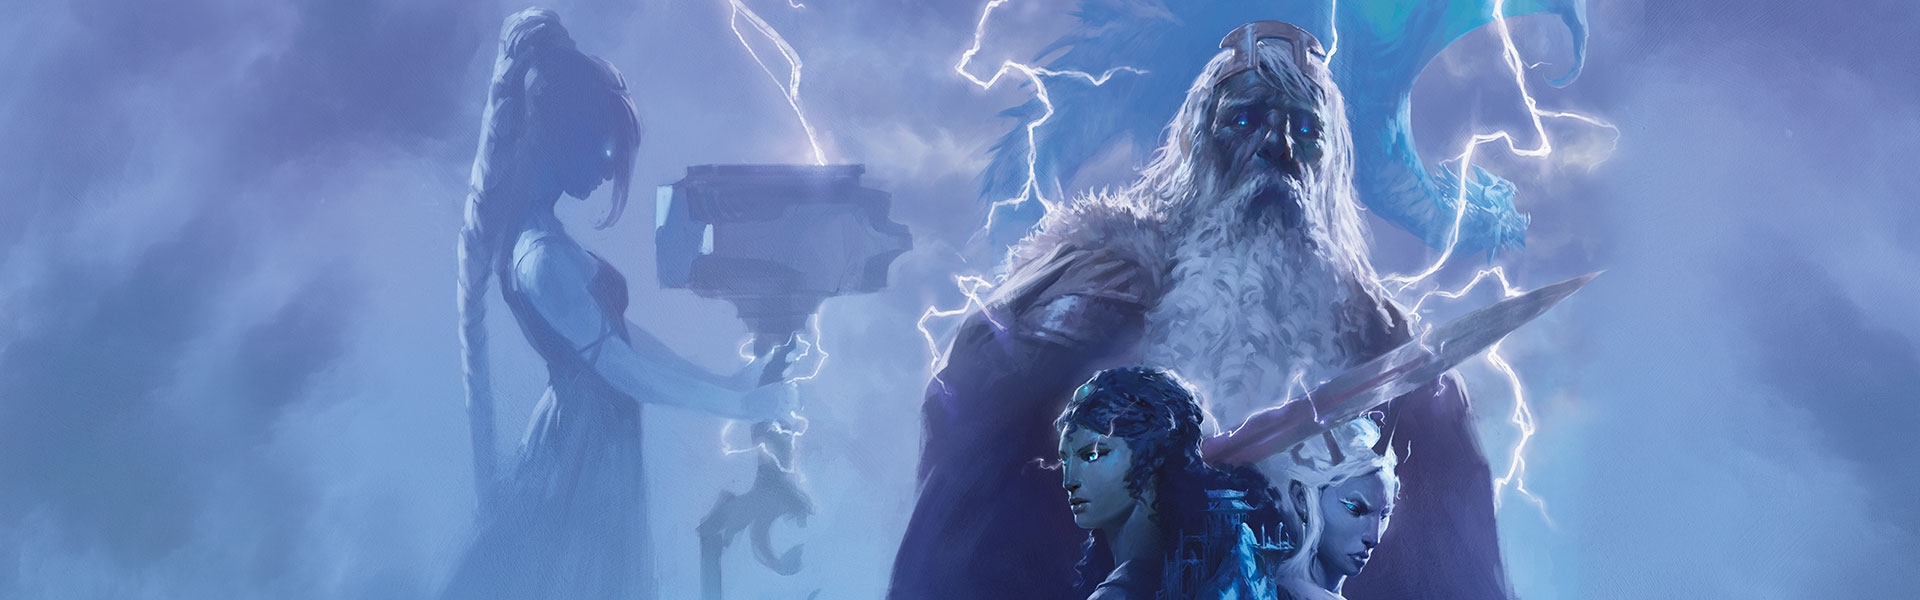 Stormkingsthunder header